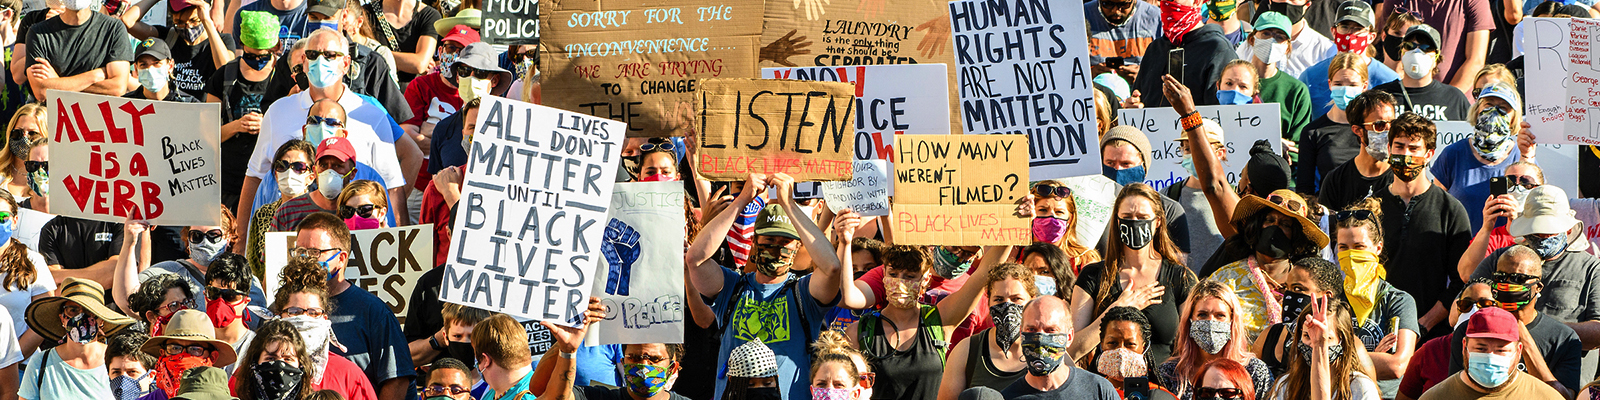 Students demonstrating in support of social justice